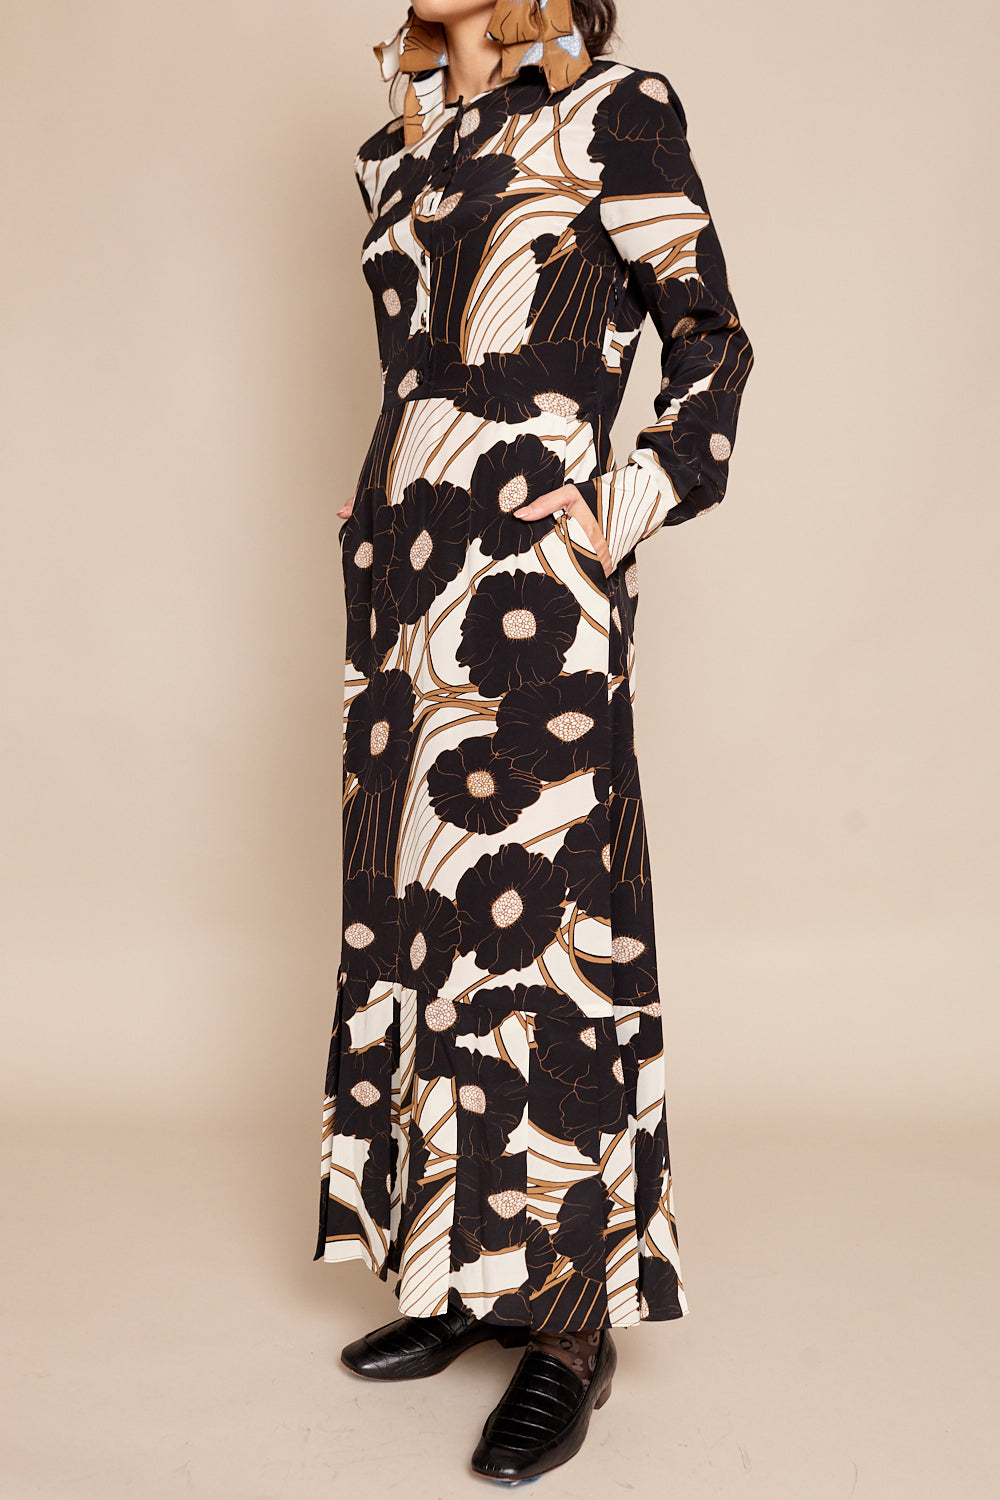 Rachel Comey Cessation Dress in Psychedelic Floral - Vert & Vogue